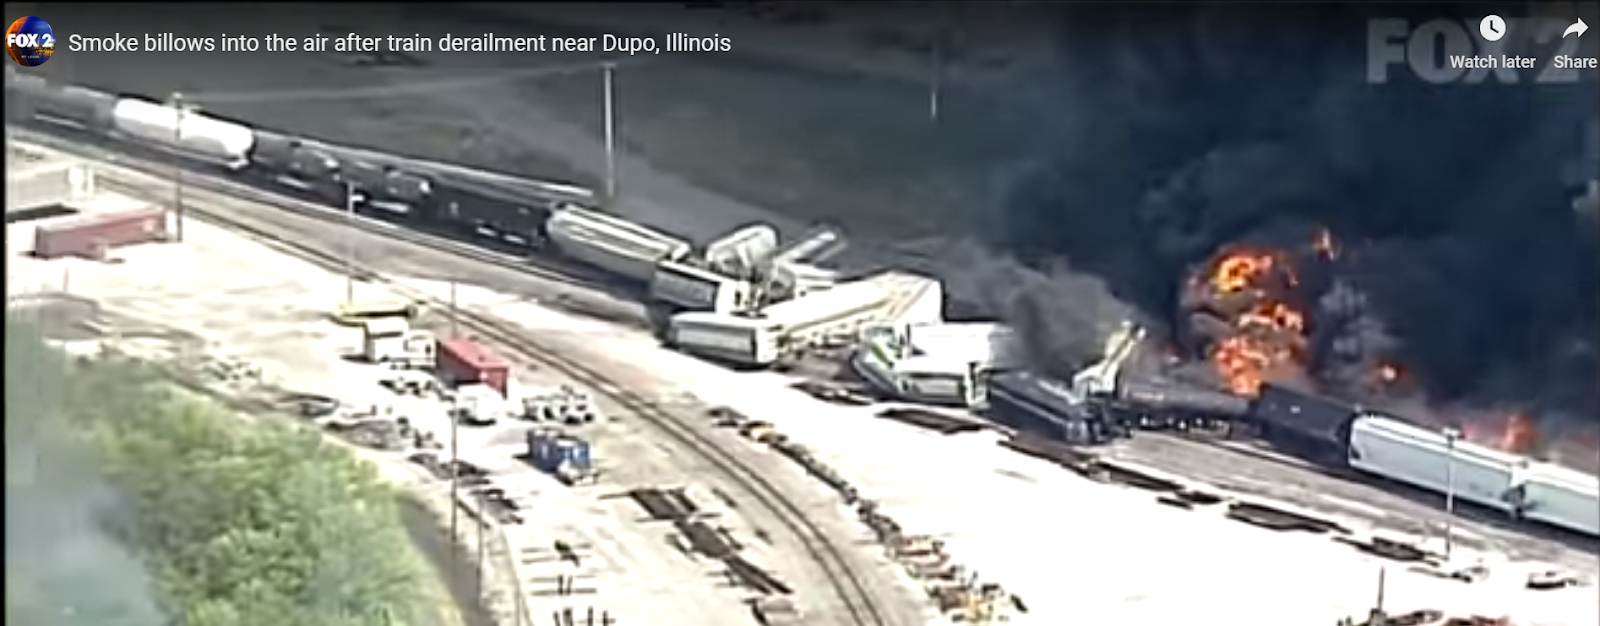 Industrial History: Five derailments and a hazmat fire in a